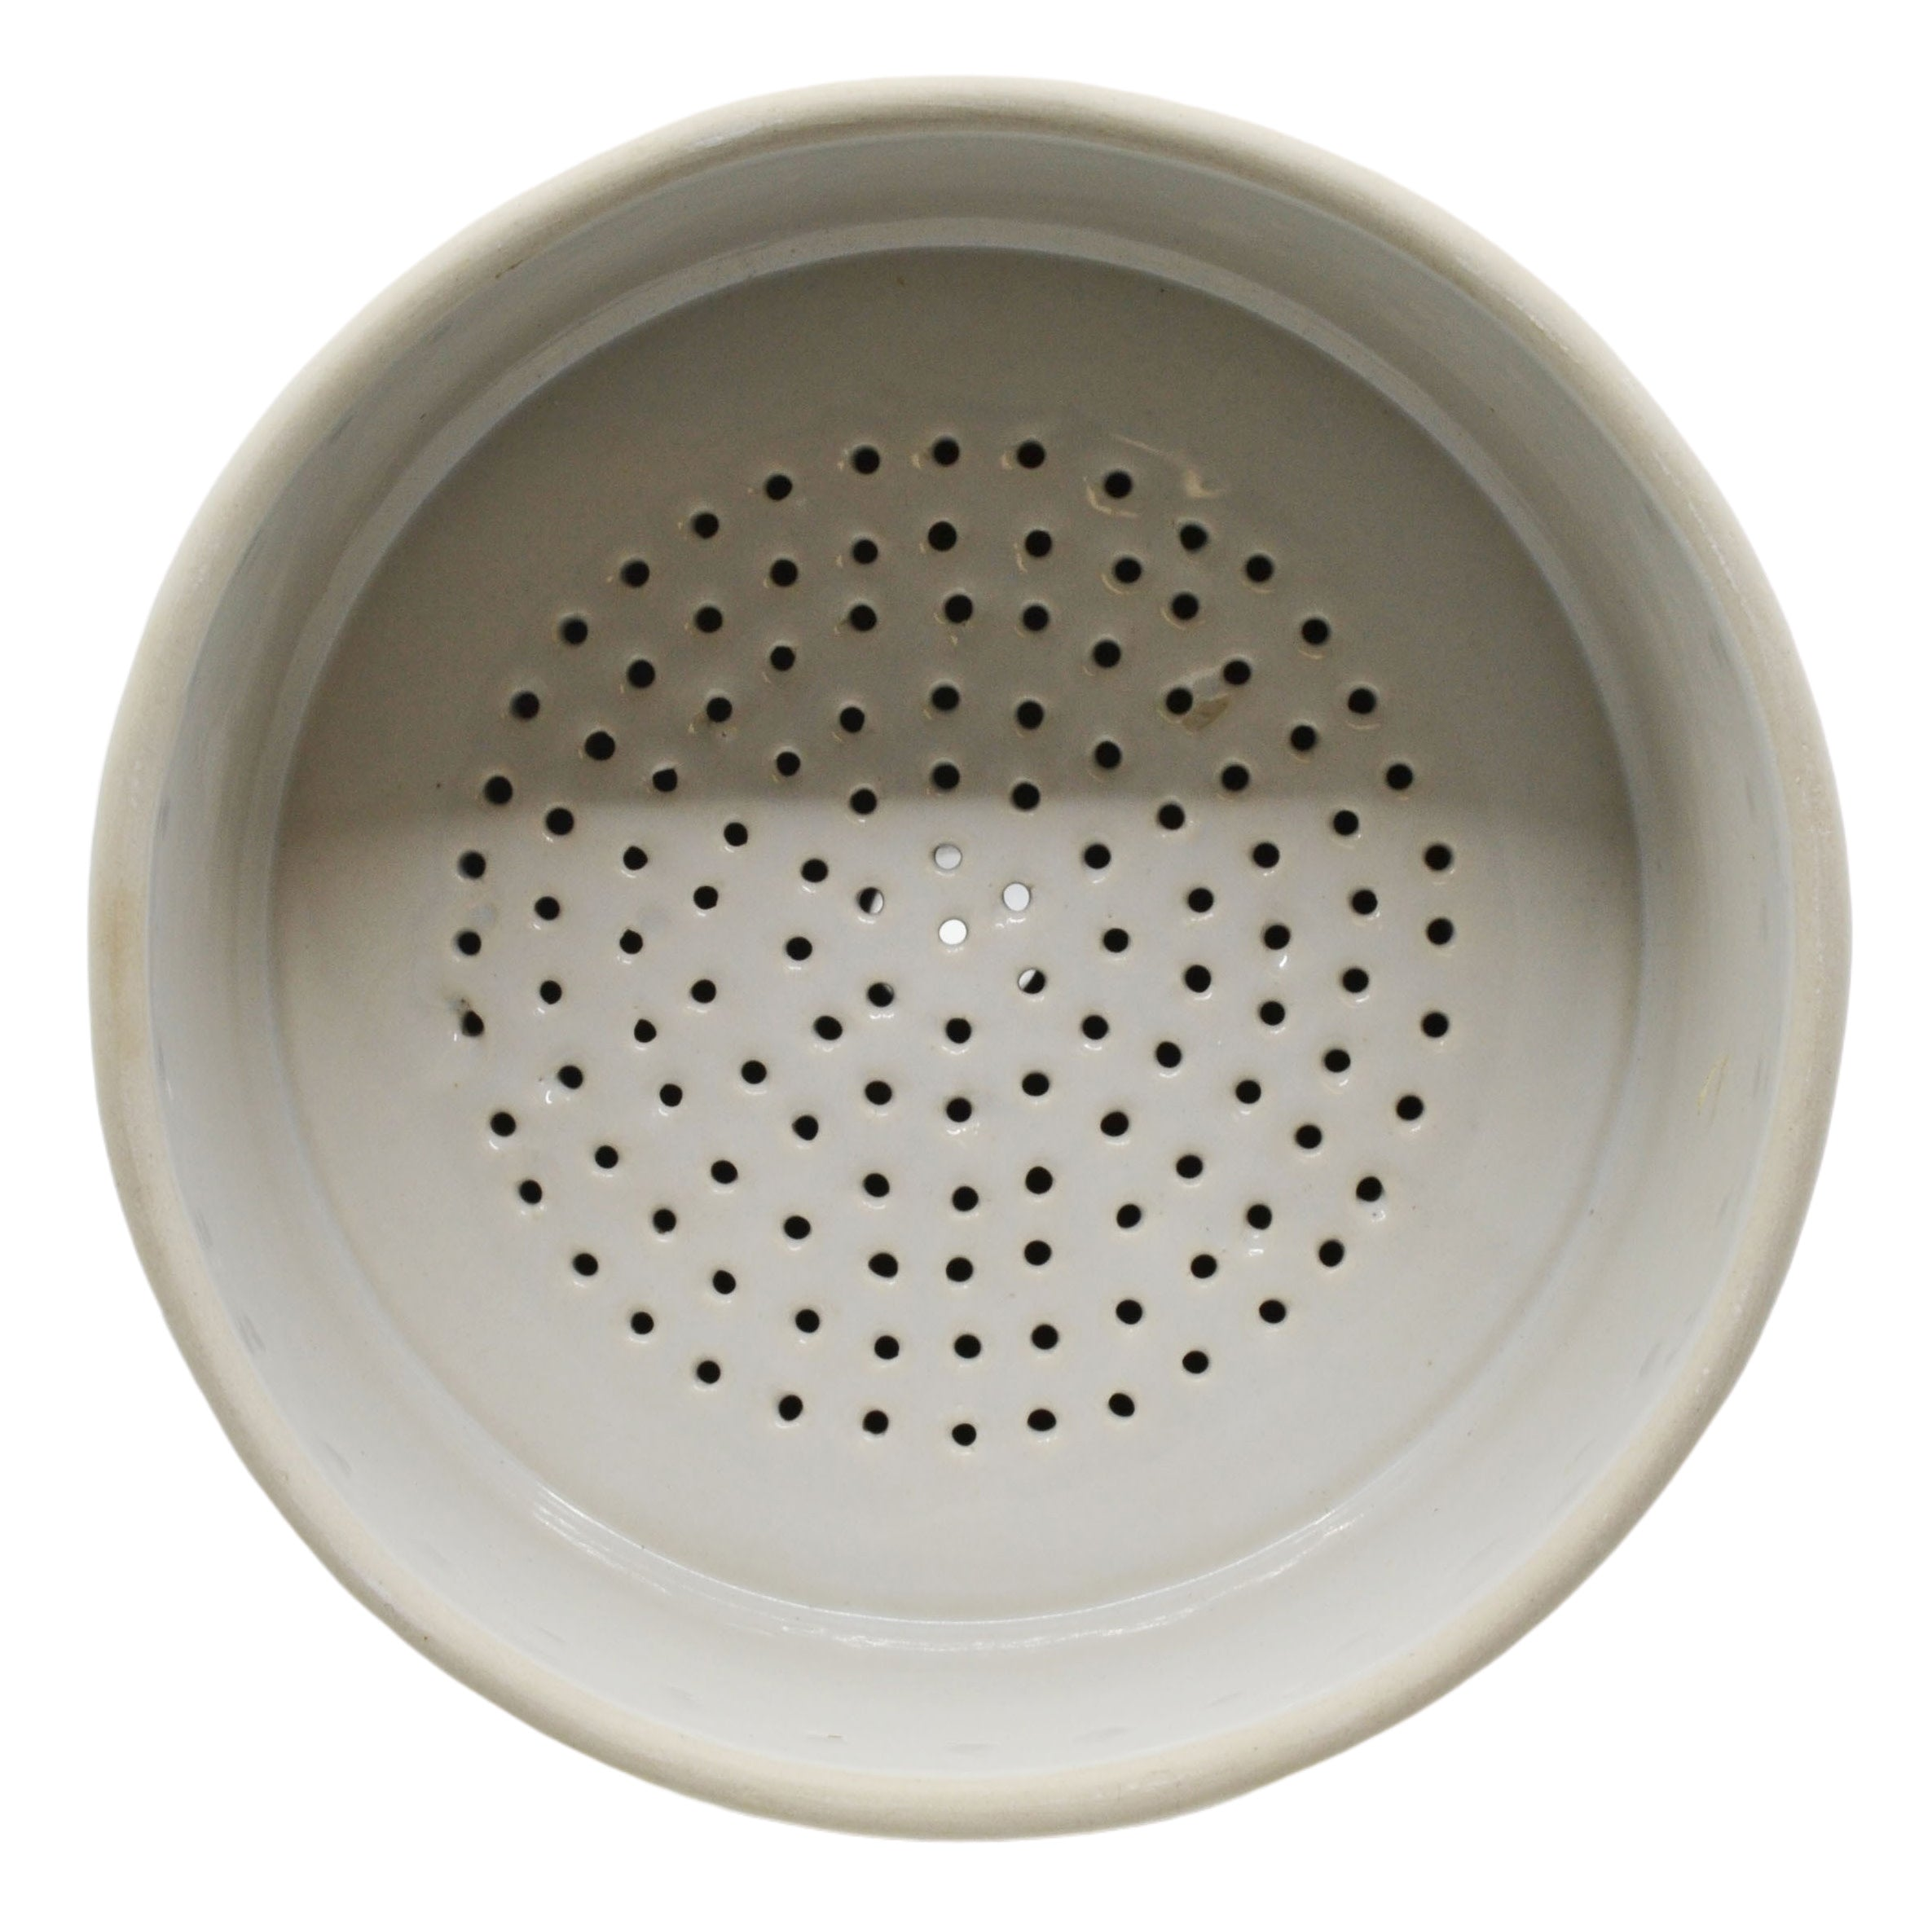 Porcelain Buchner Funnel, Perforated Plate, 15cm